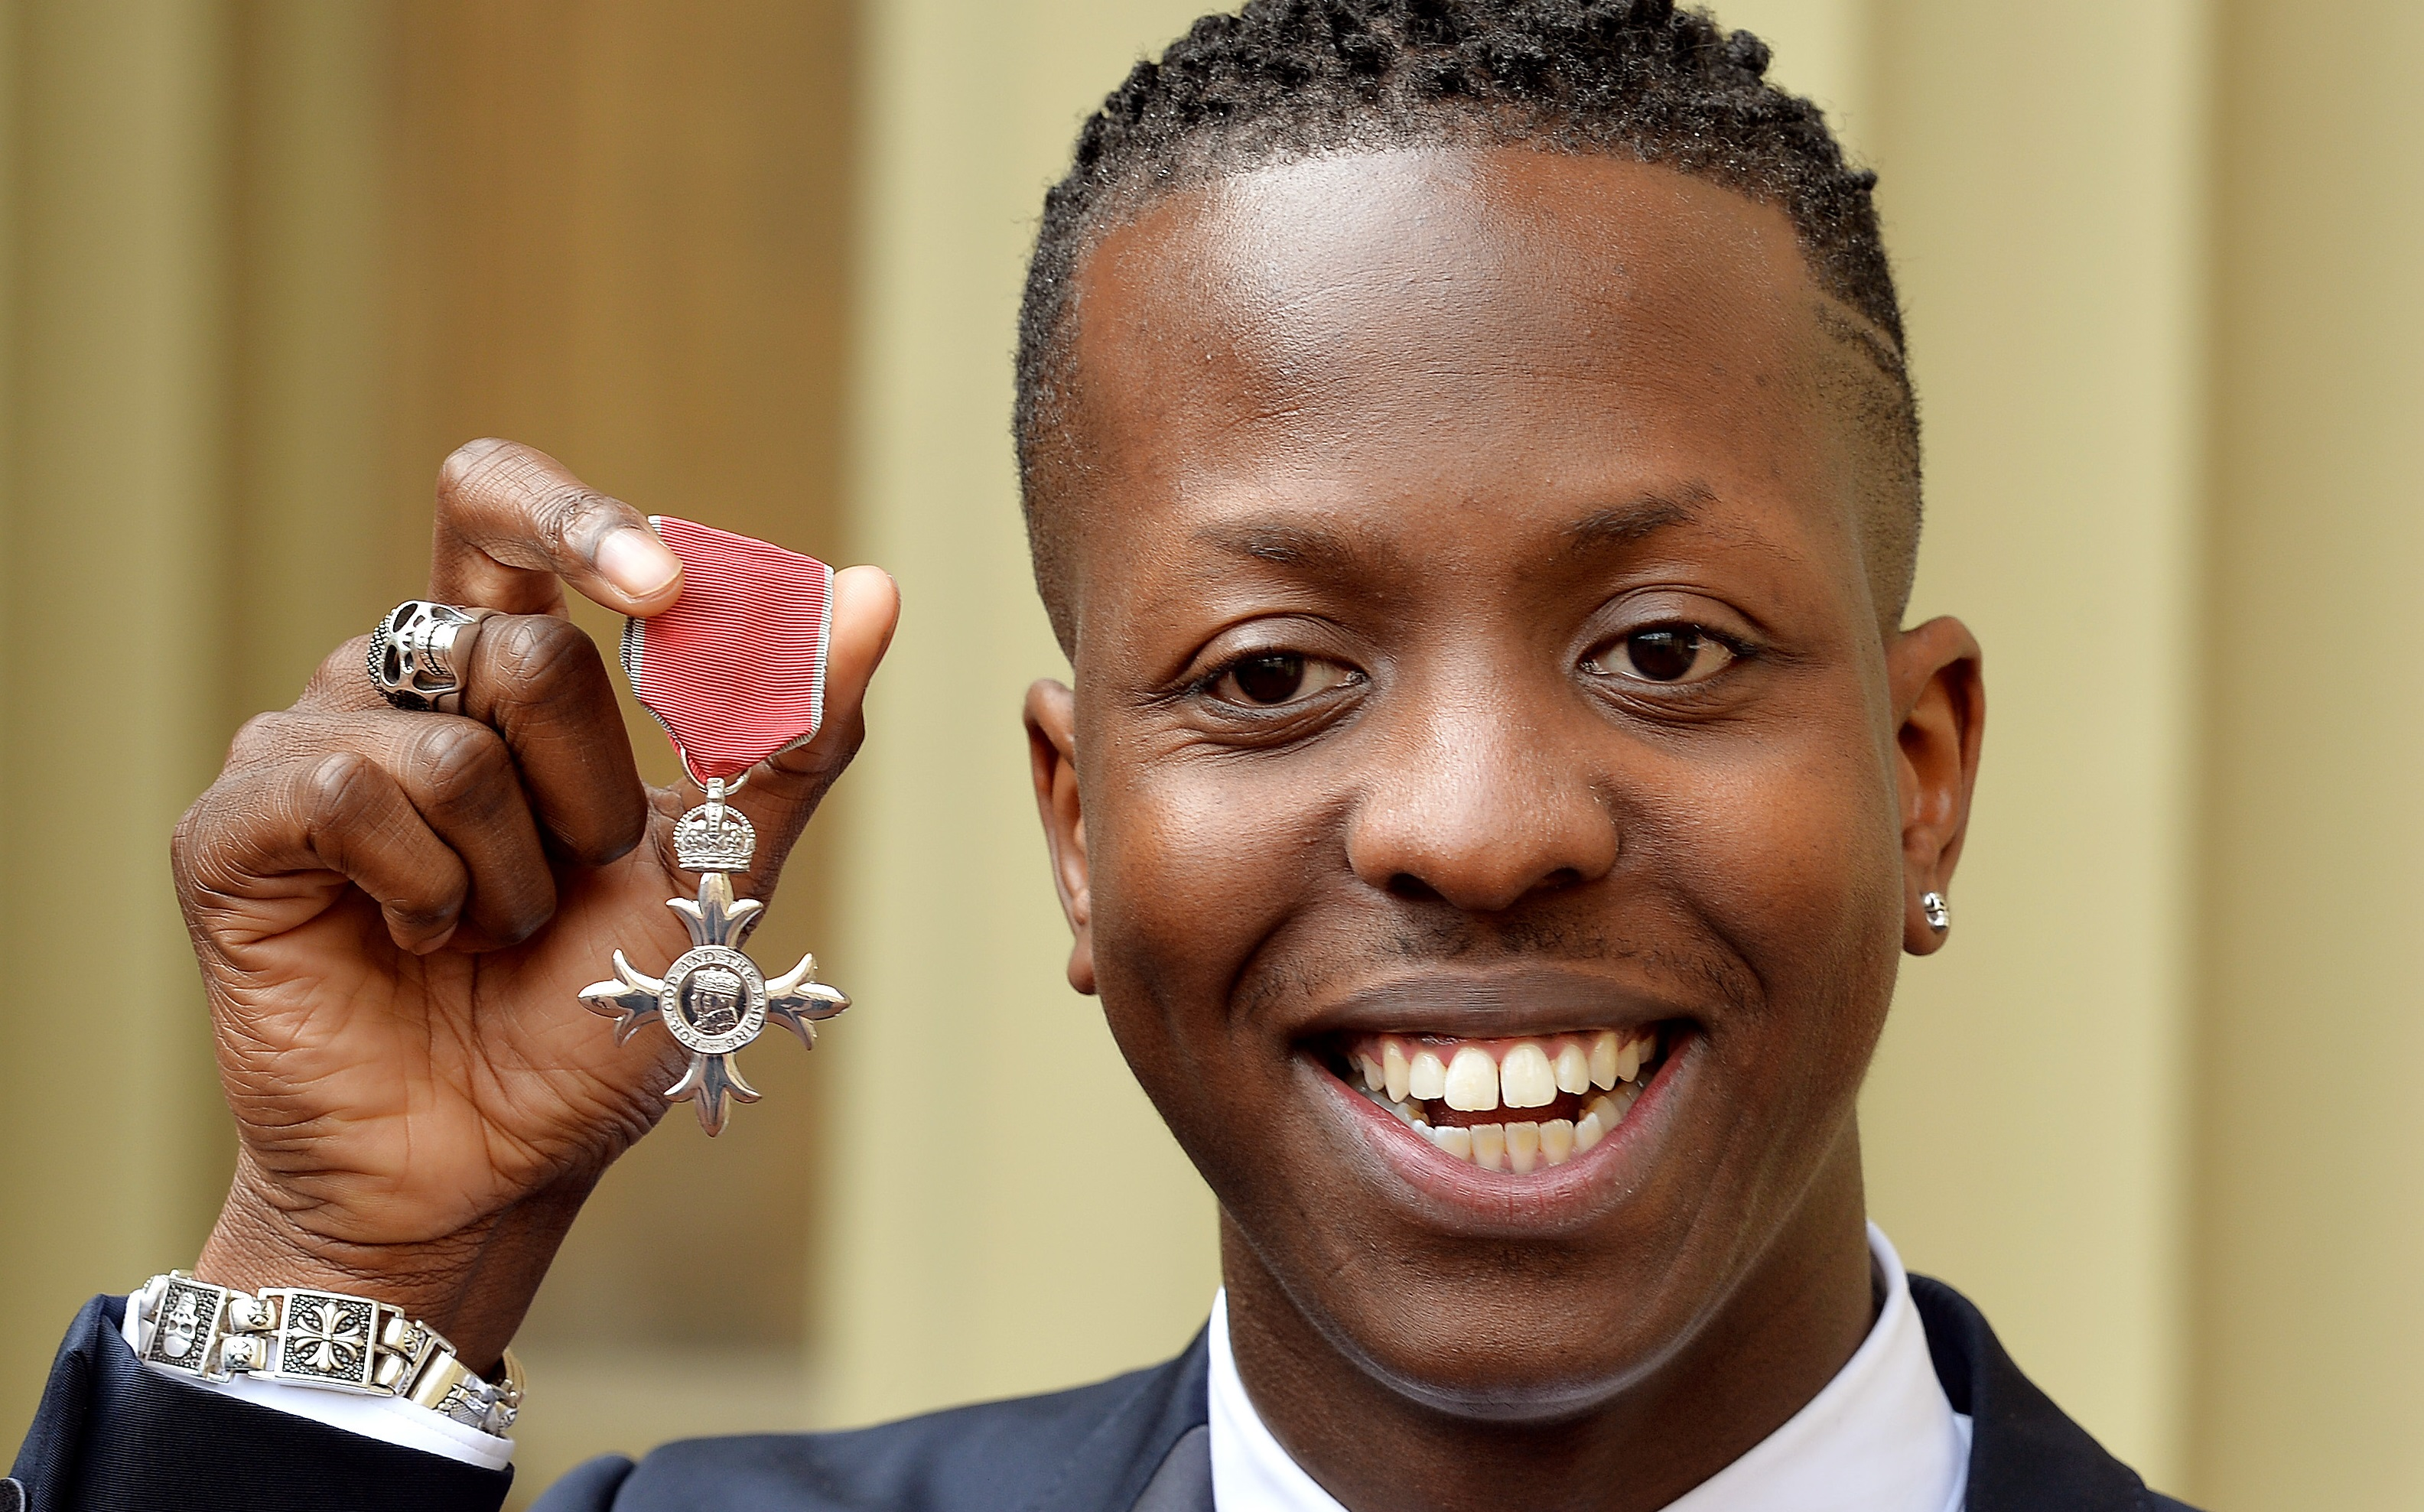 'SBTV FOUNDER' JAMAL EDWARDS RECEIVES MBE FROM PRINCE CHARLES!